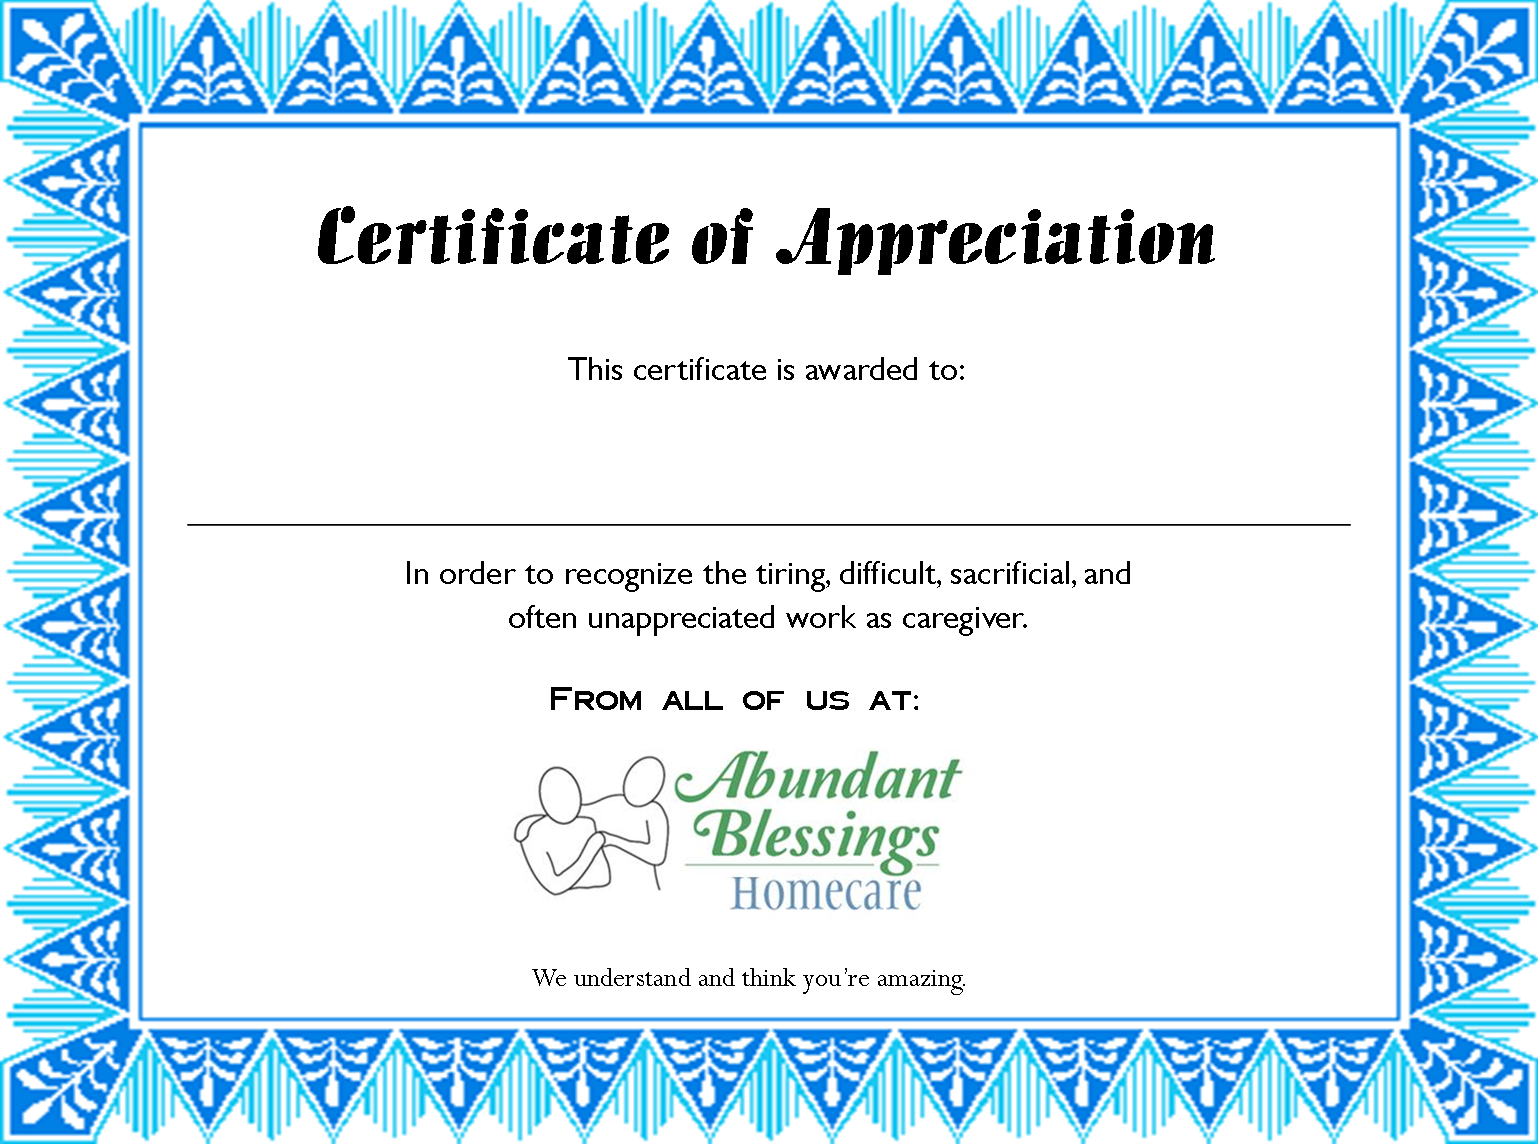 Certificate of appreciation are you a family caregiver who feels certificate of appreciation are you a family caregiver who feels invisible we see you 1betcityfo Choice Image